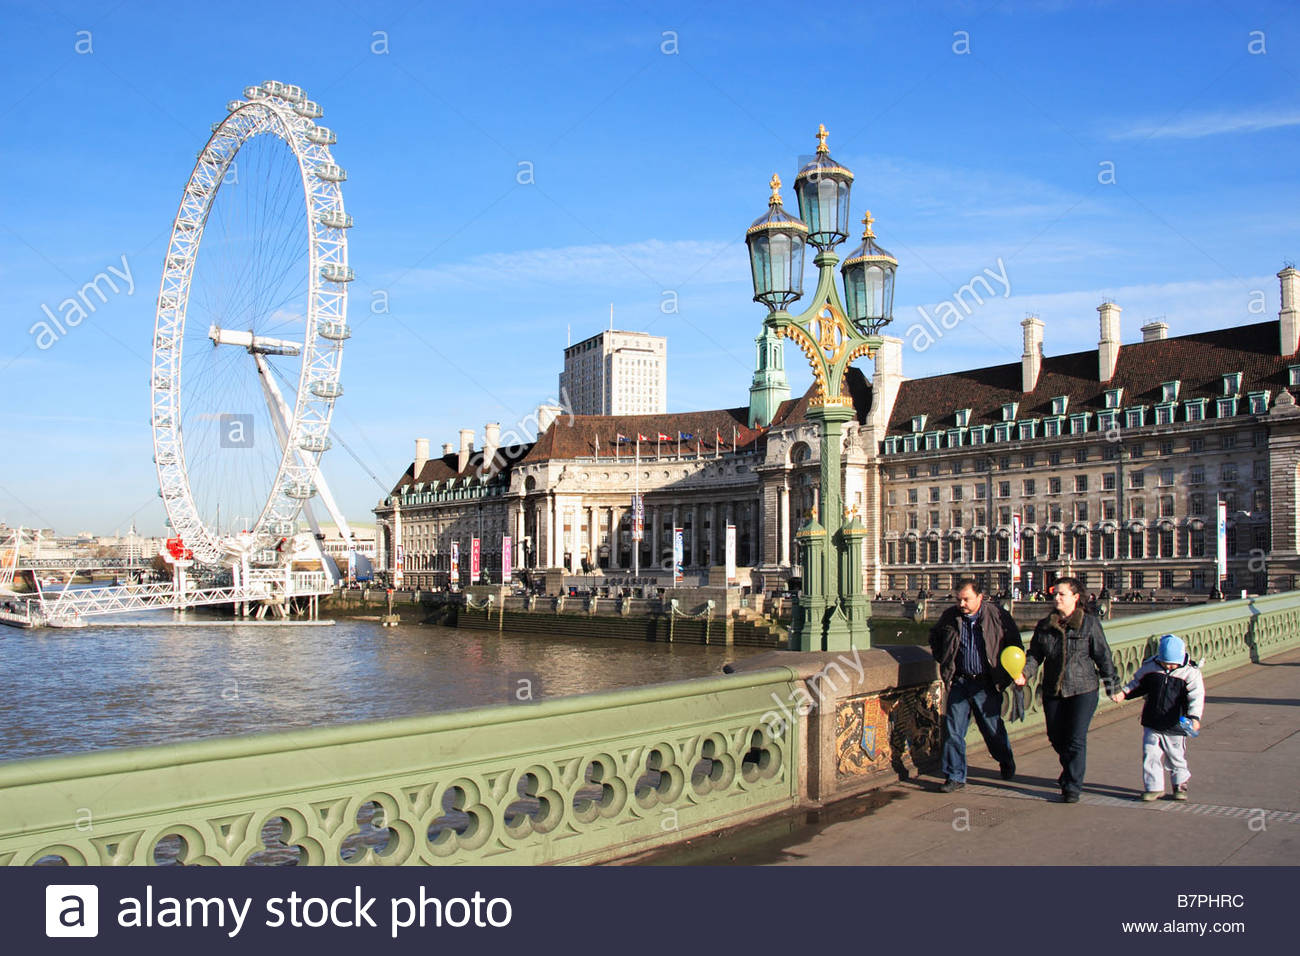 The London Eye beyond the River Thames Stock Photo